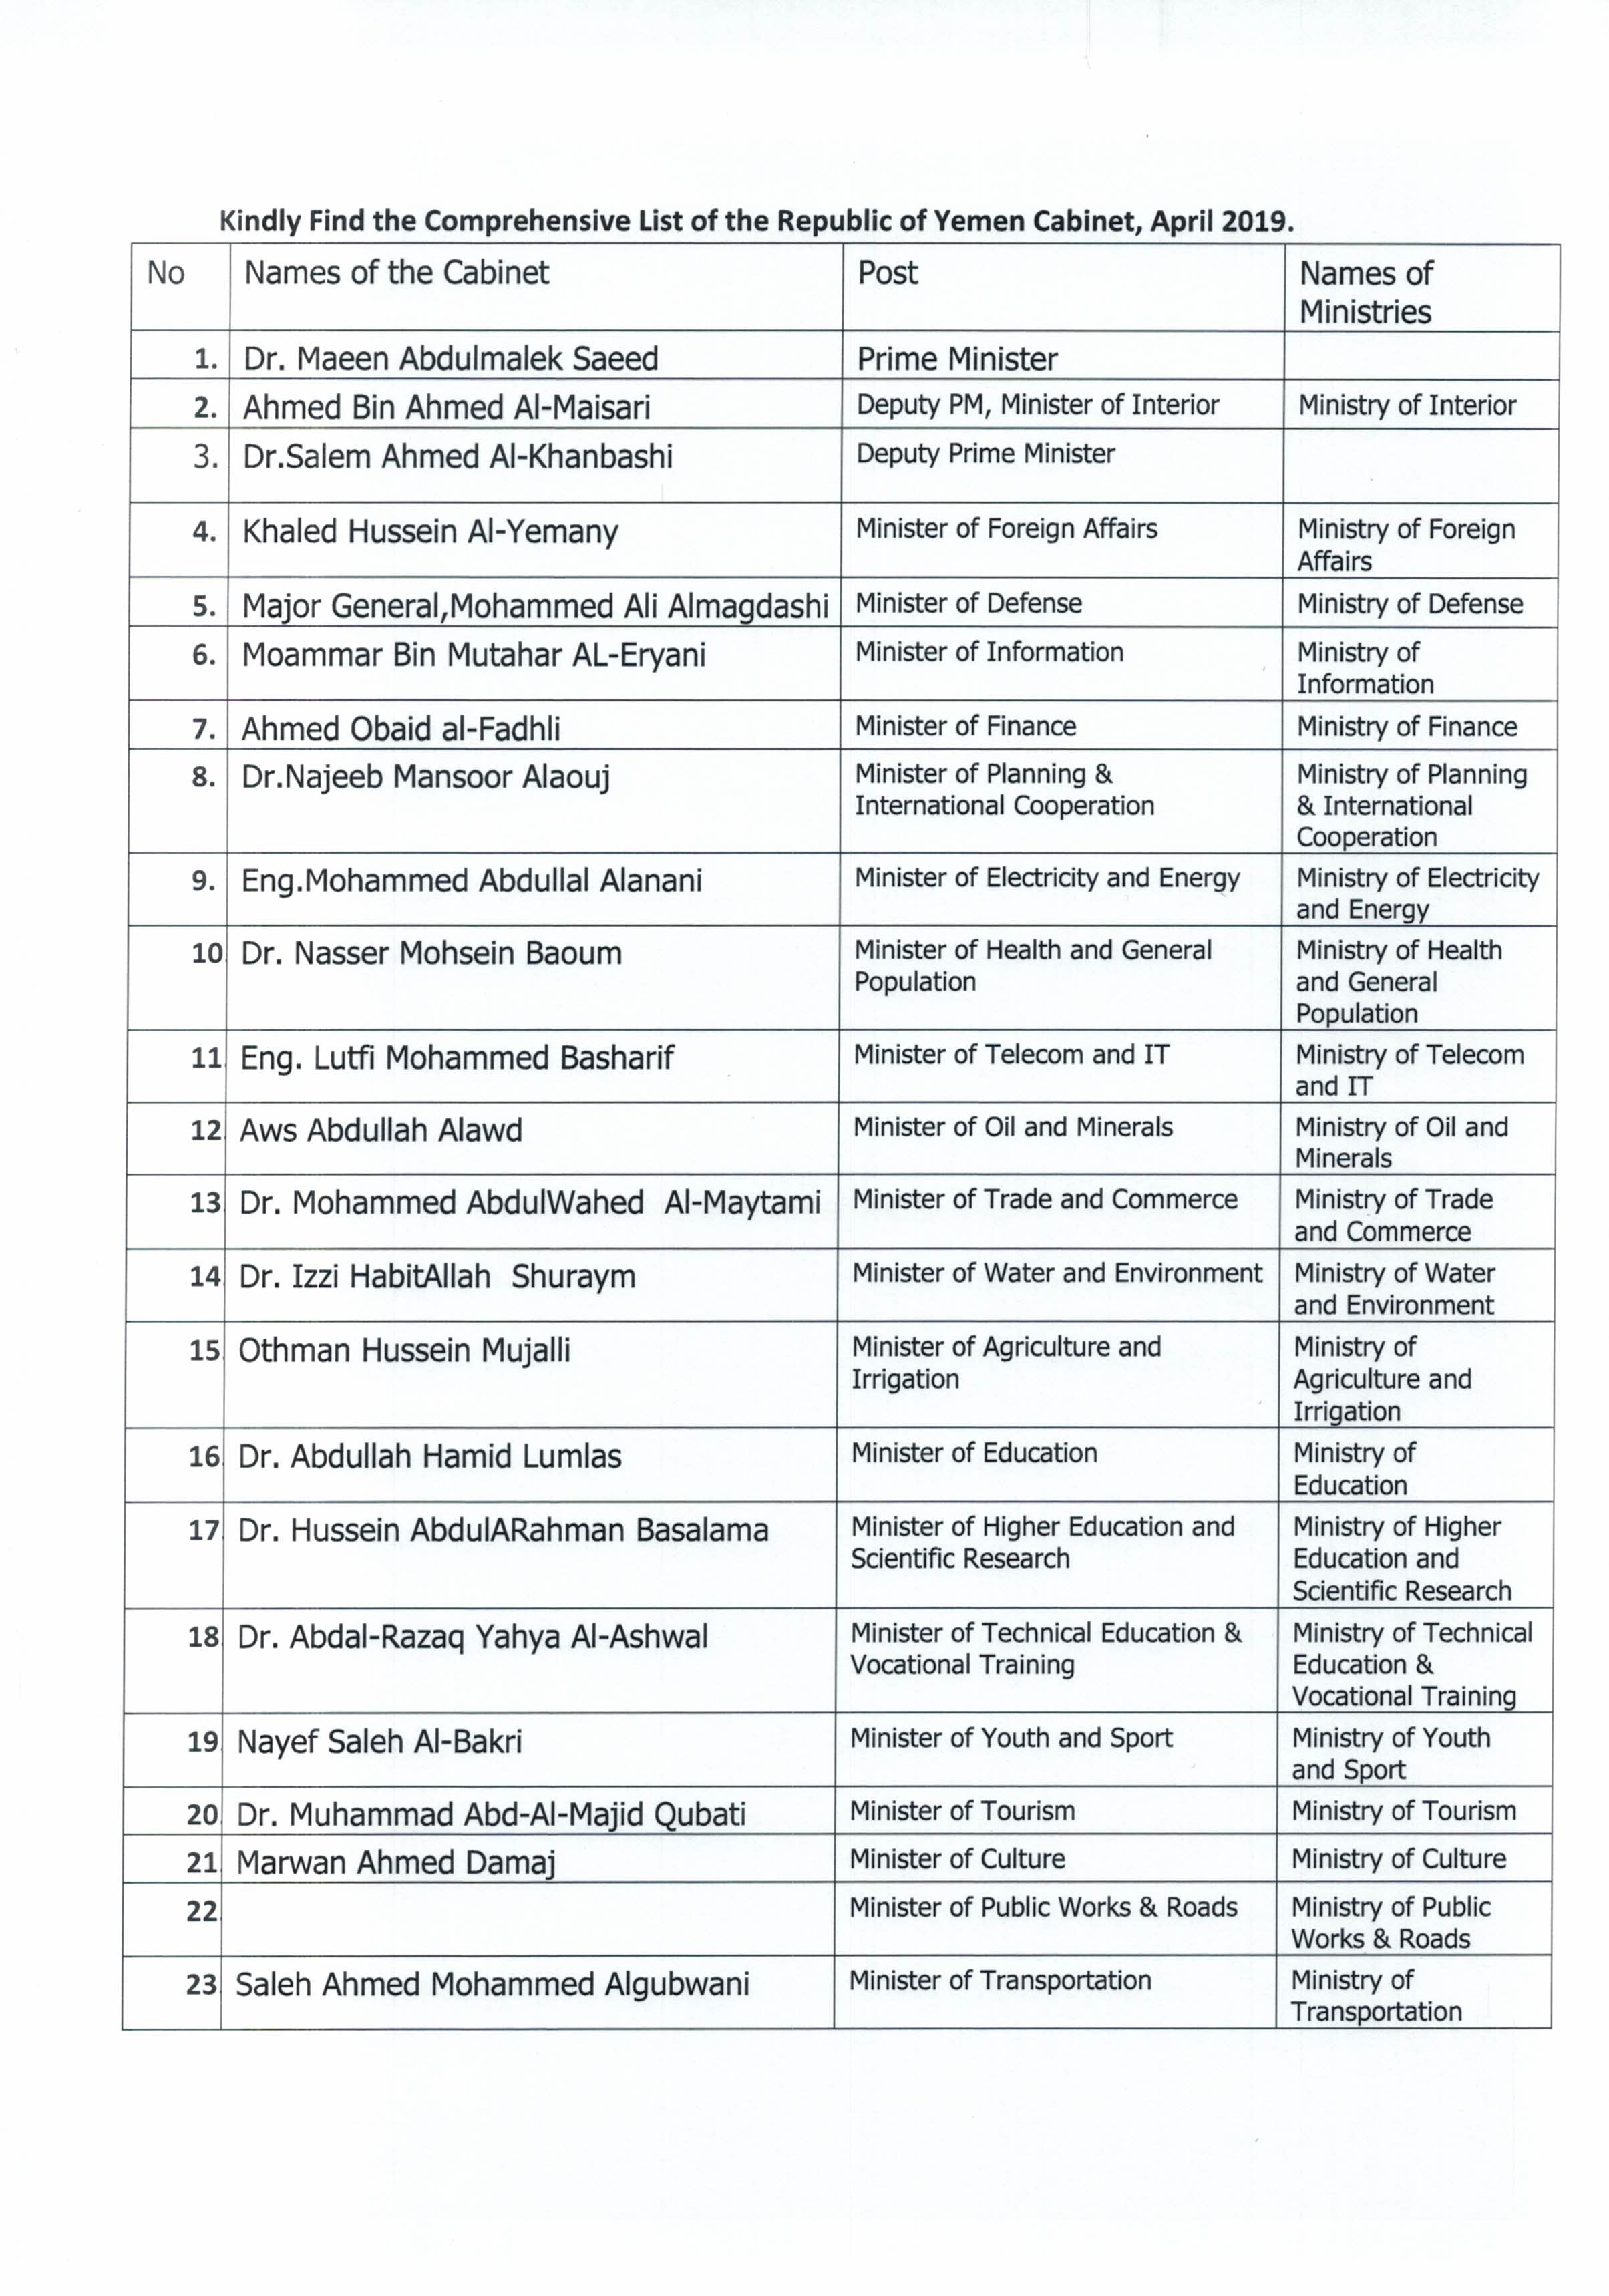 List of the Republic of Yemen Cabinet